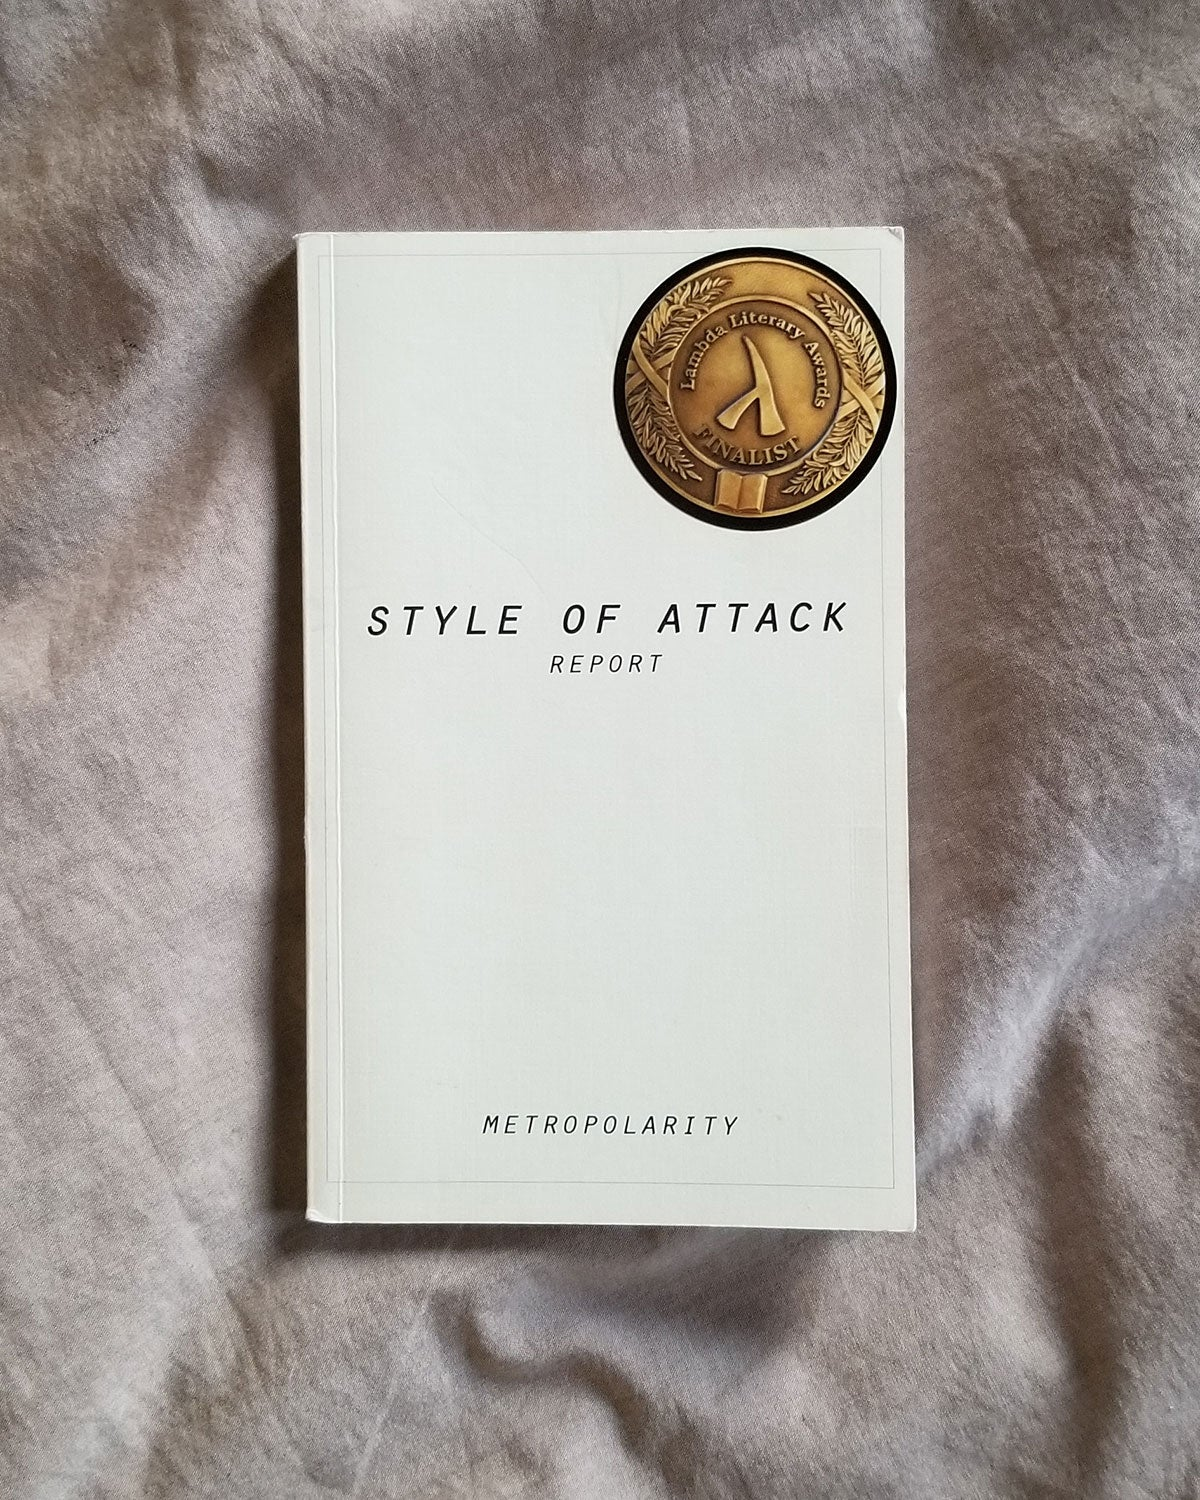 METROPOLARITY'S STYLE OF ATTACK REPORT